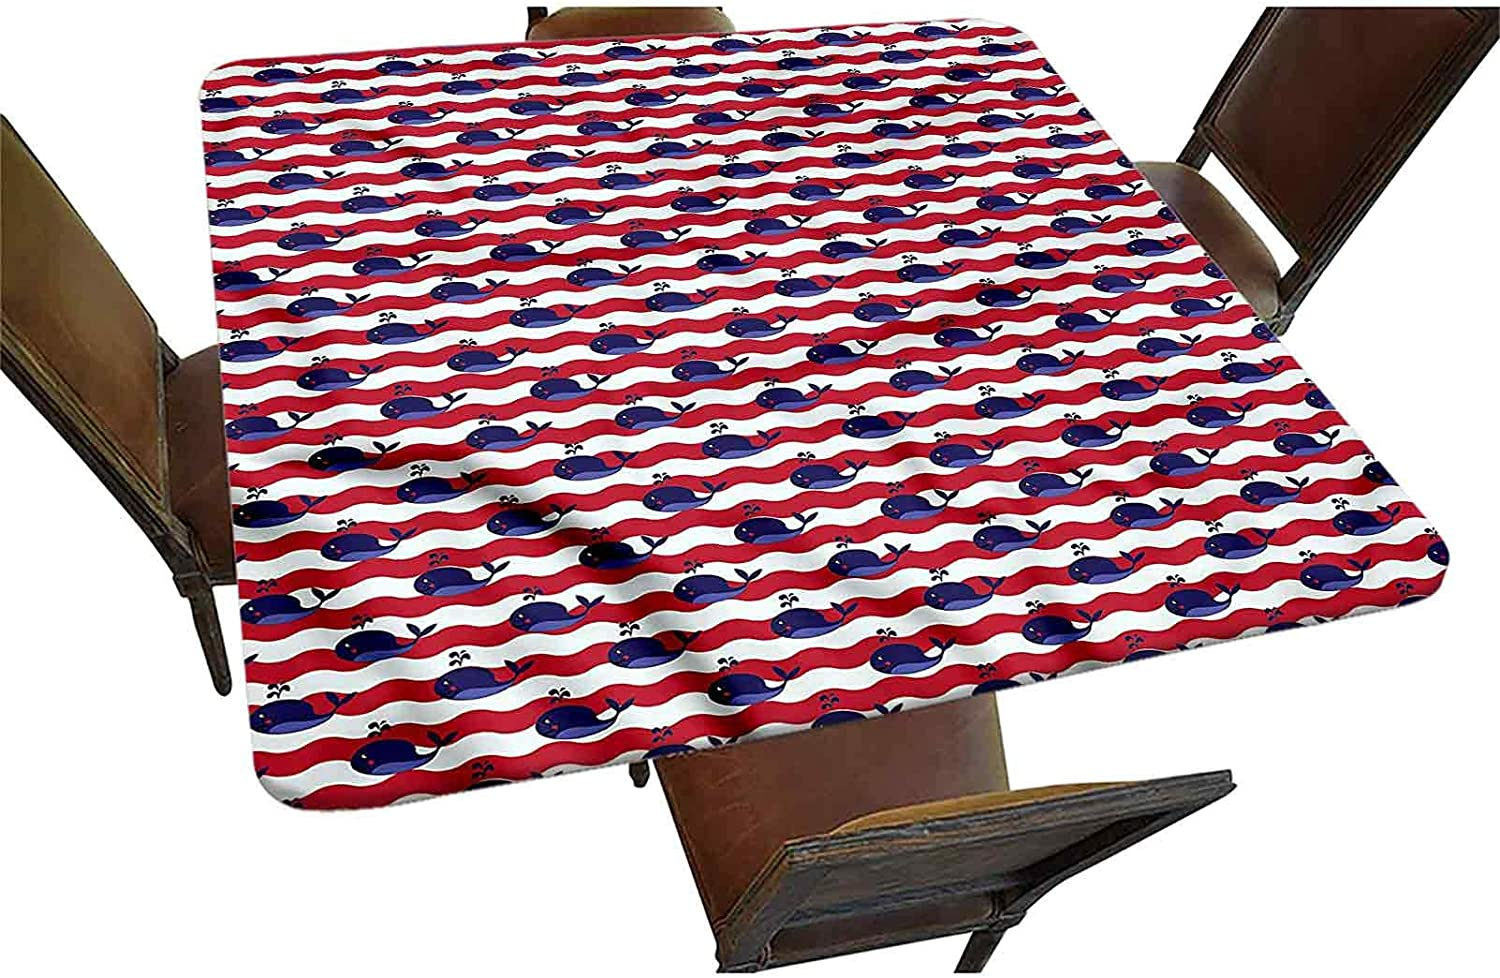 Whale Decorative Elastic Edged OFFicial shop Tablecloth Square trust Nautical Fitted